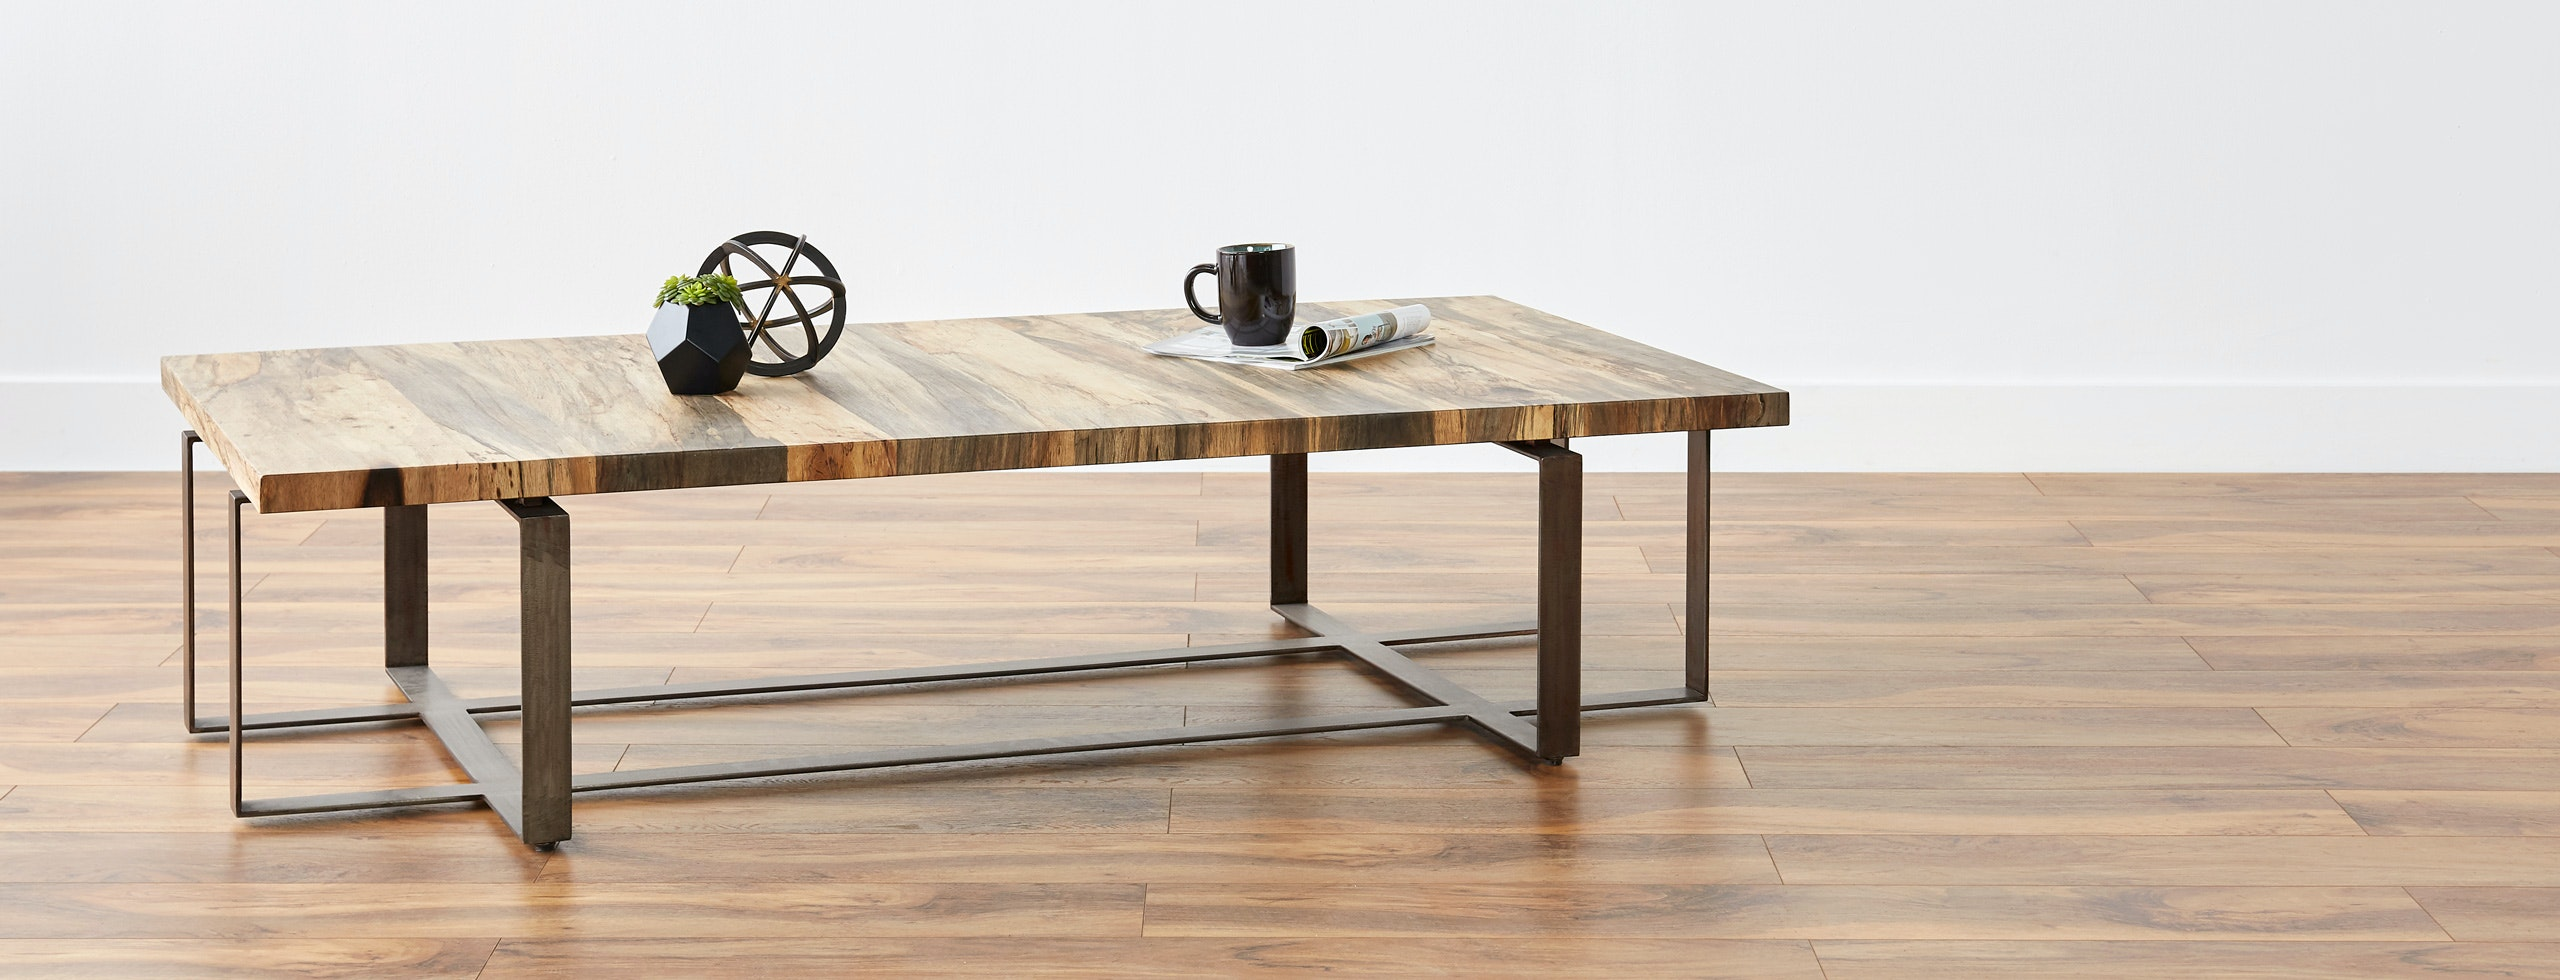 Admirable Brant Coffee Table Ibusinesslaw Wood Chair Design Ideas Ibusinesslaworg